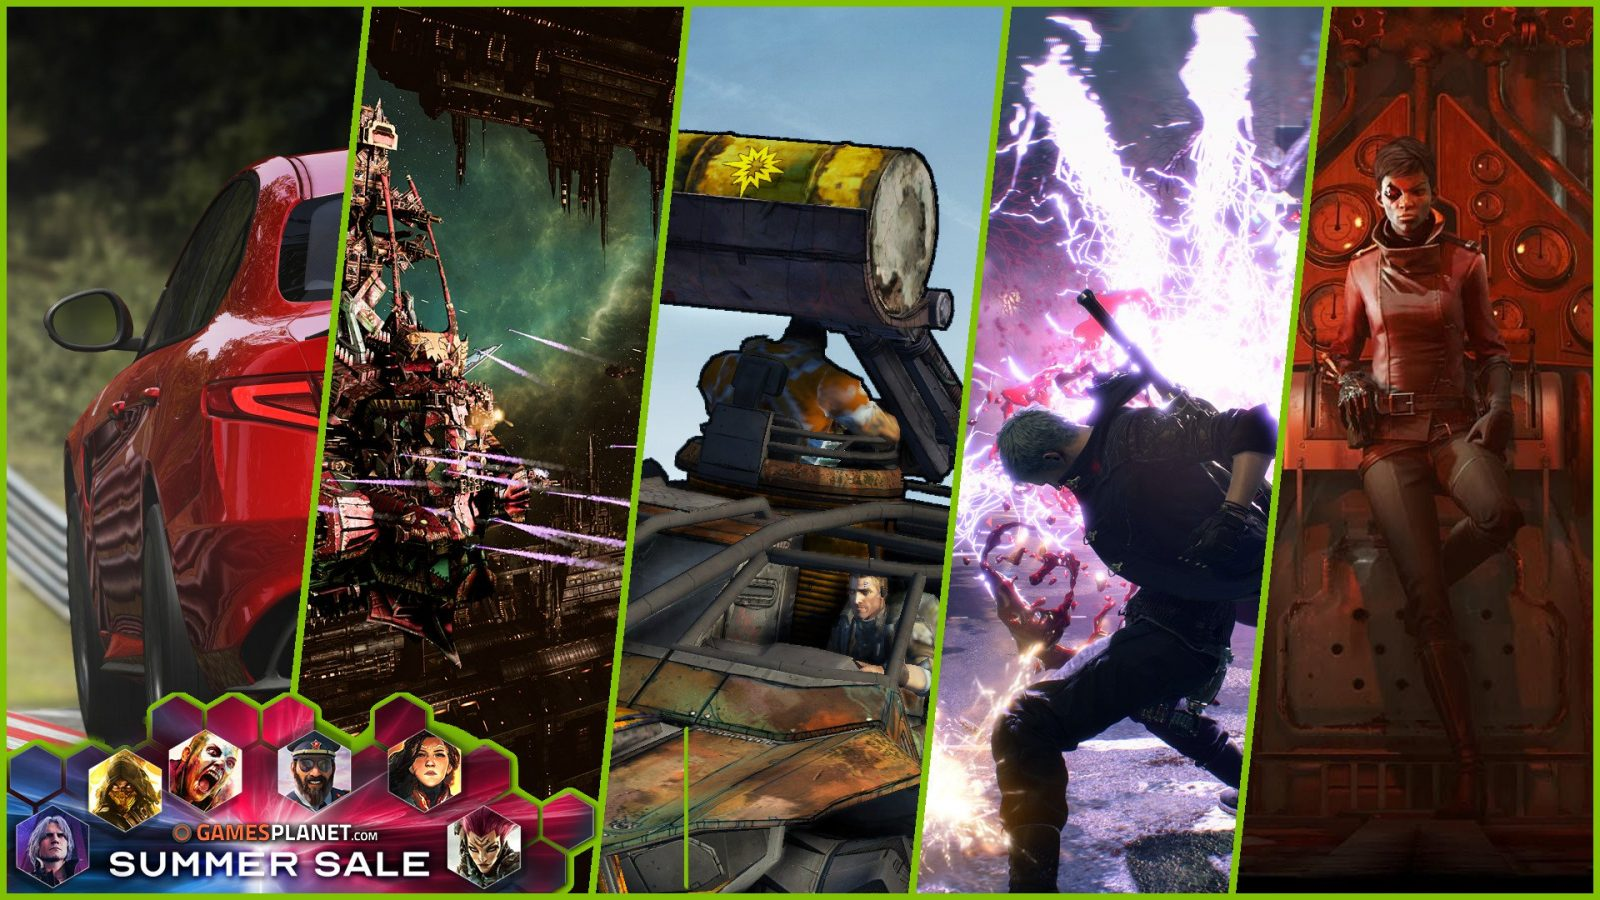 Gamesplanet Summer Sale 2019 Now Live, Features Nearly 2,000 Games